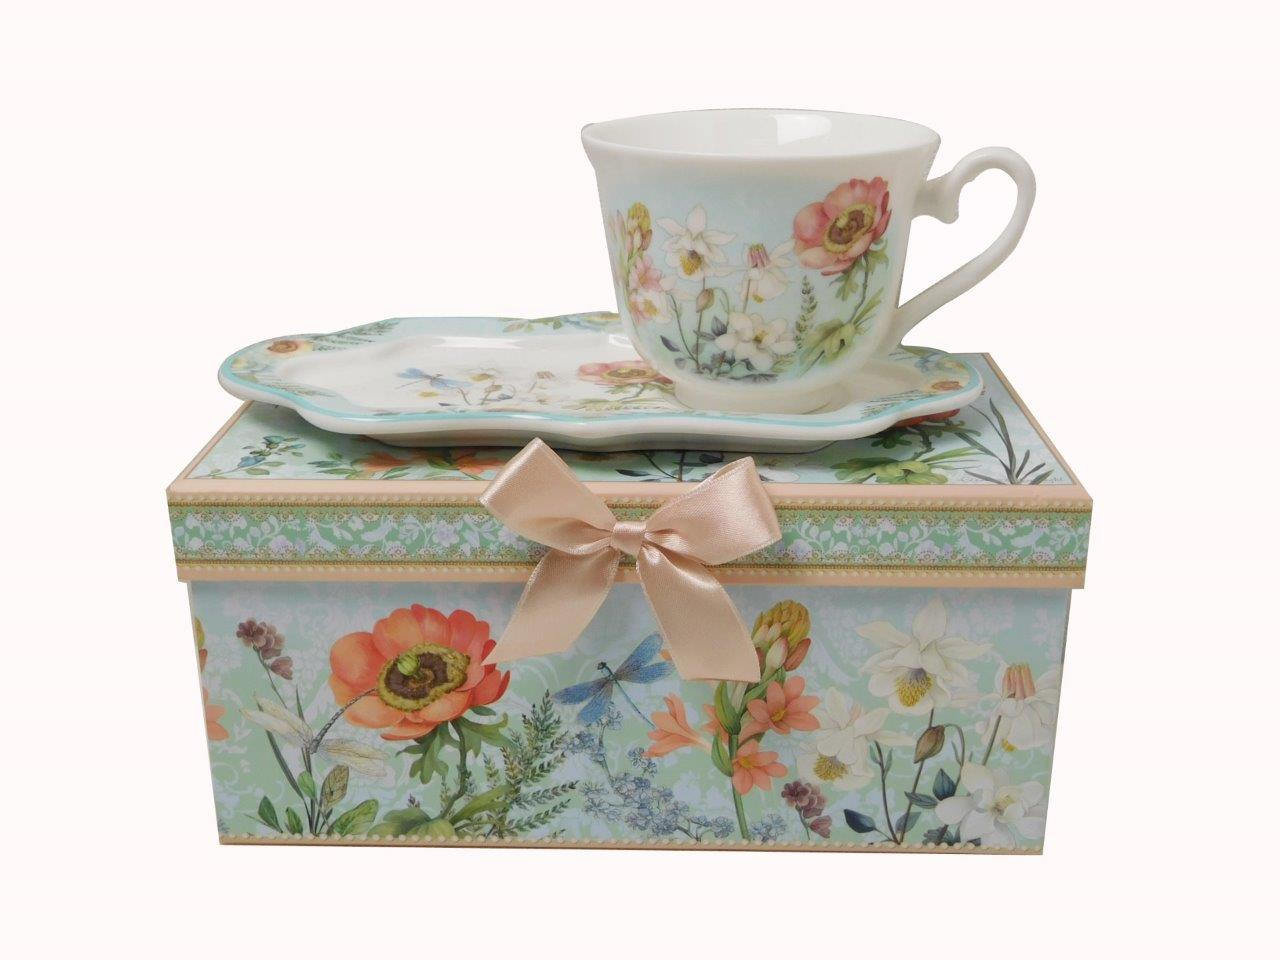 Lightahead New Bone China Unique 8.5oz Tea   Coffee Cup and Snack Saucer Set in a Reusable... by Lightahead®